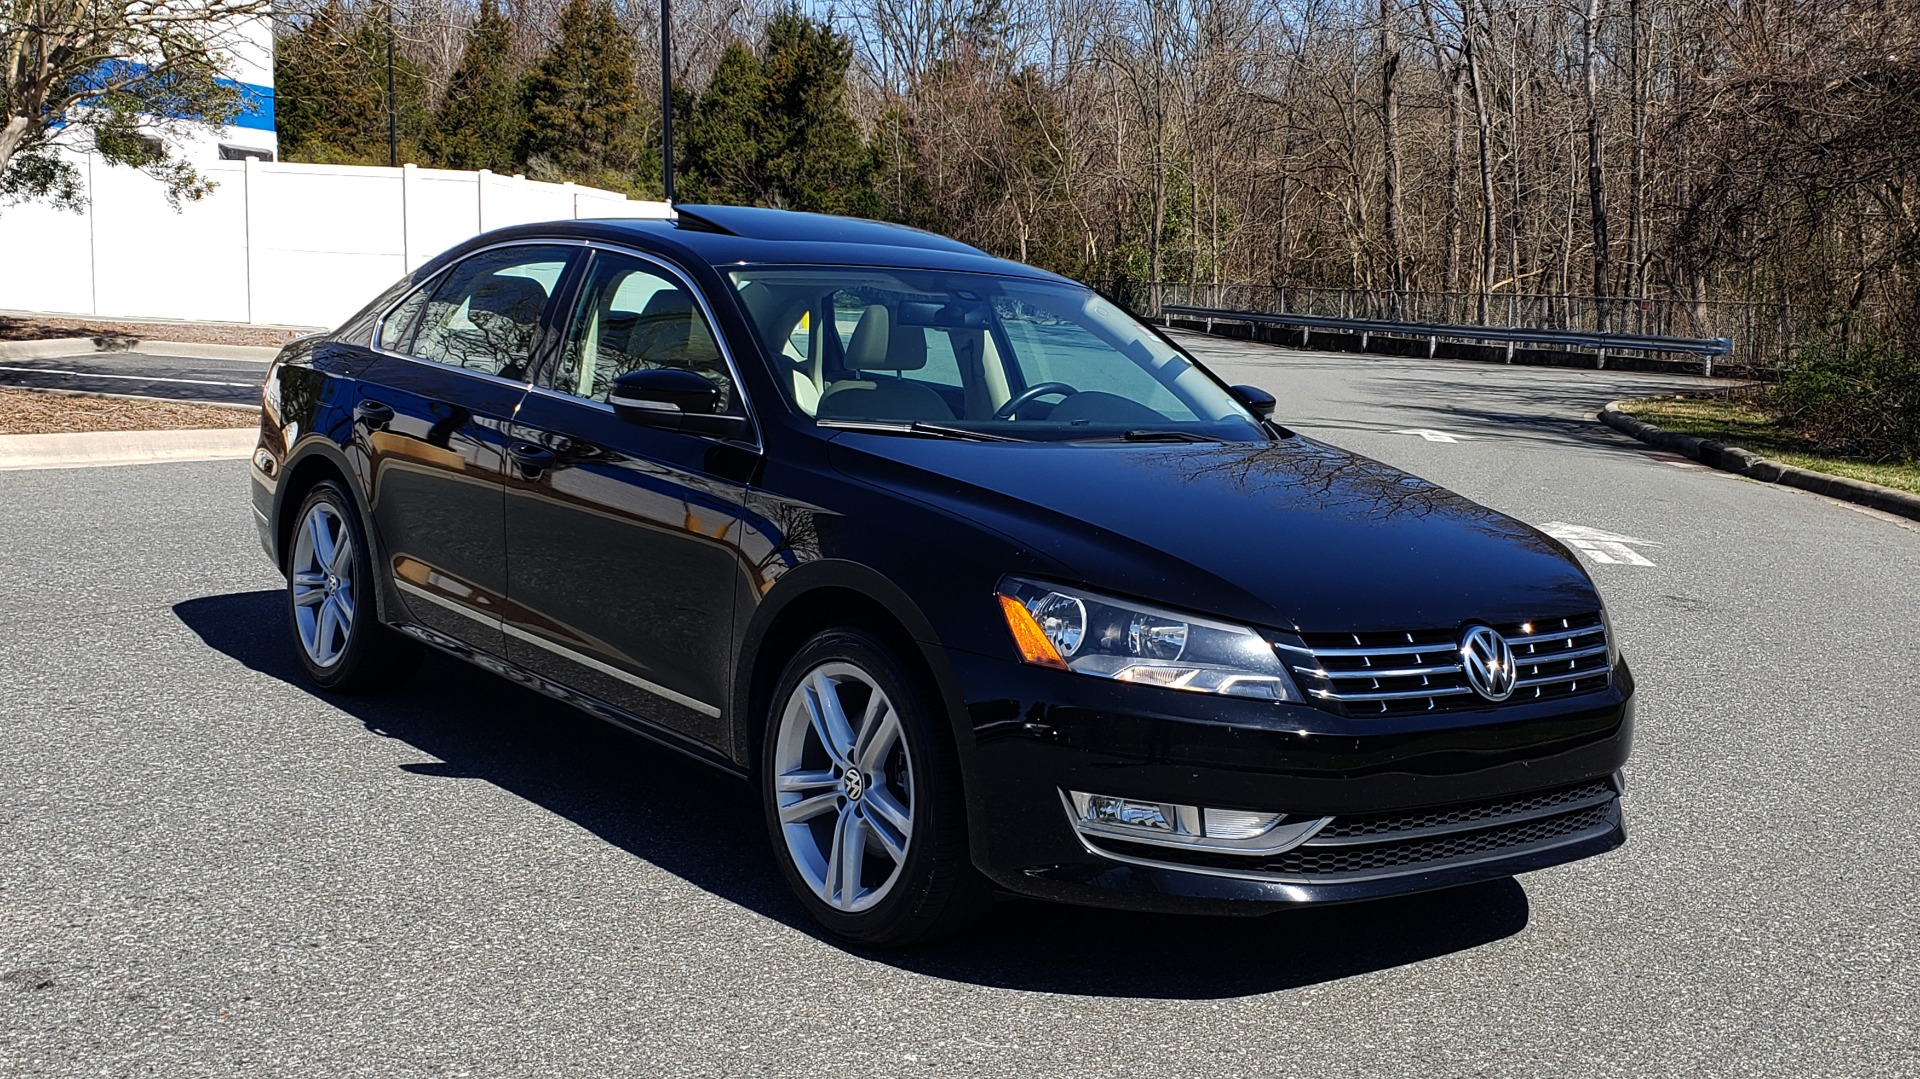 Used 2014 Volkswagen PASSAT SEL PREMIUM / NAV / SUNROOF / REARVIEW / 6-SPD AUTO for sale Sold at Formula Imports in Charlotte NC 28227 4